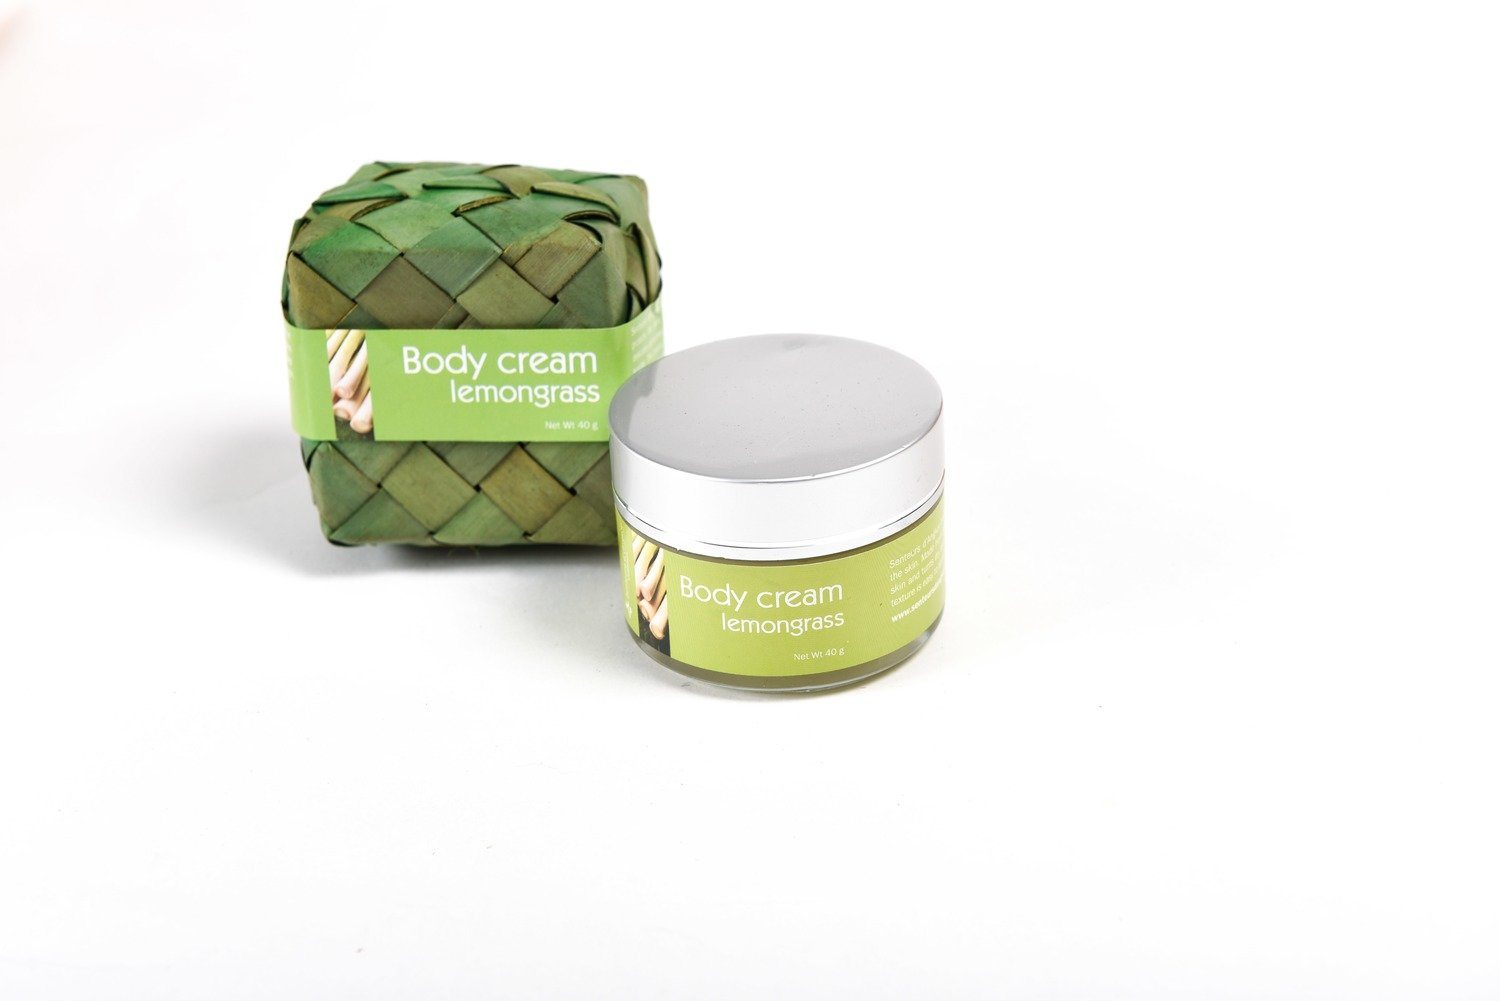 Body Cream 40g, Lemongrass